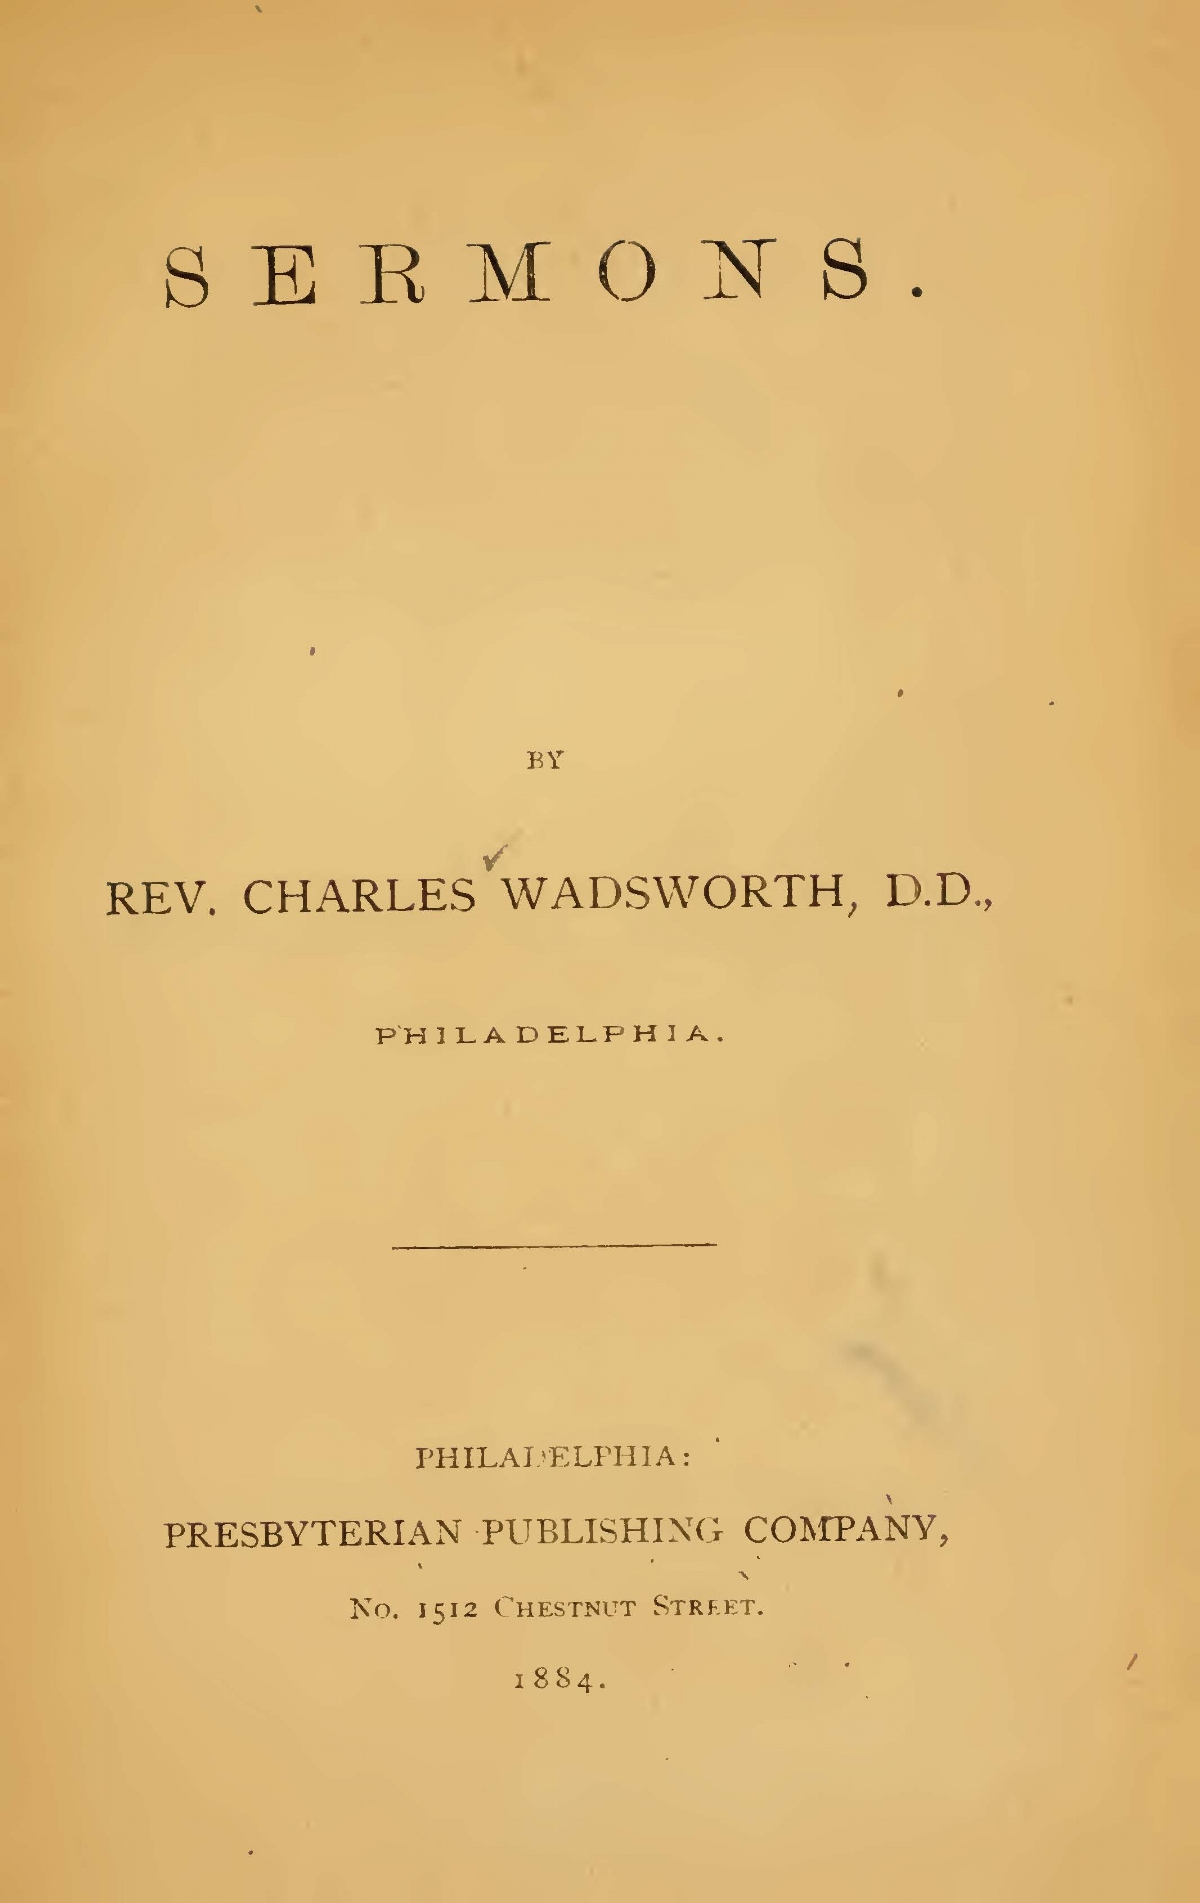 Wadsworth, Charles, Sermons 1884 Title Page.jpg